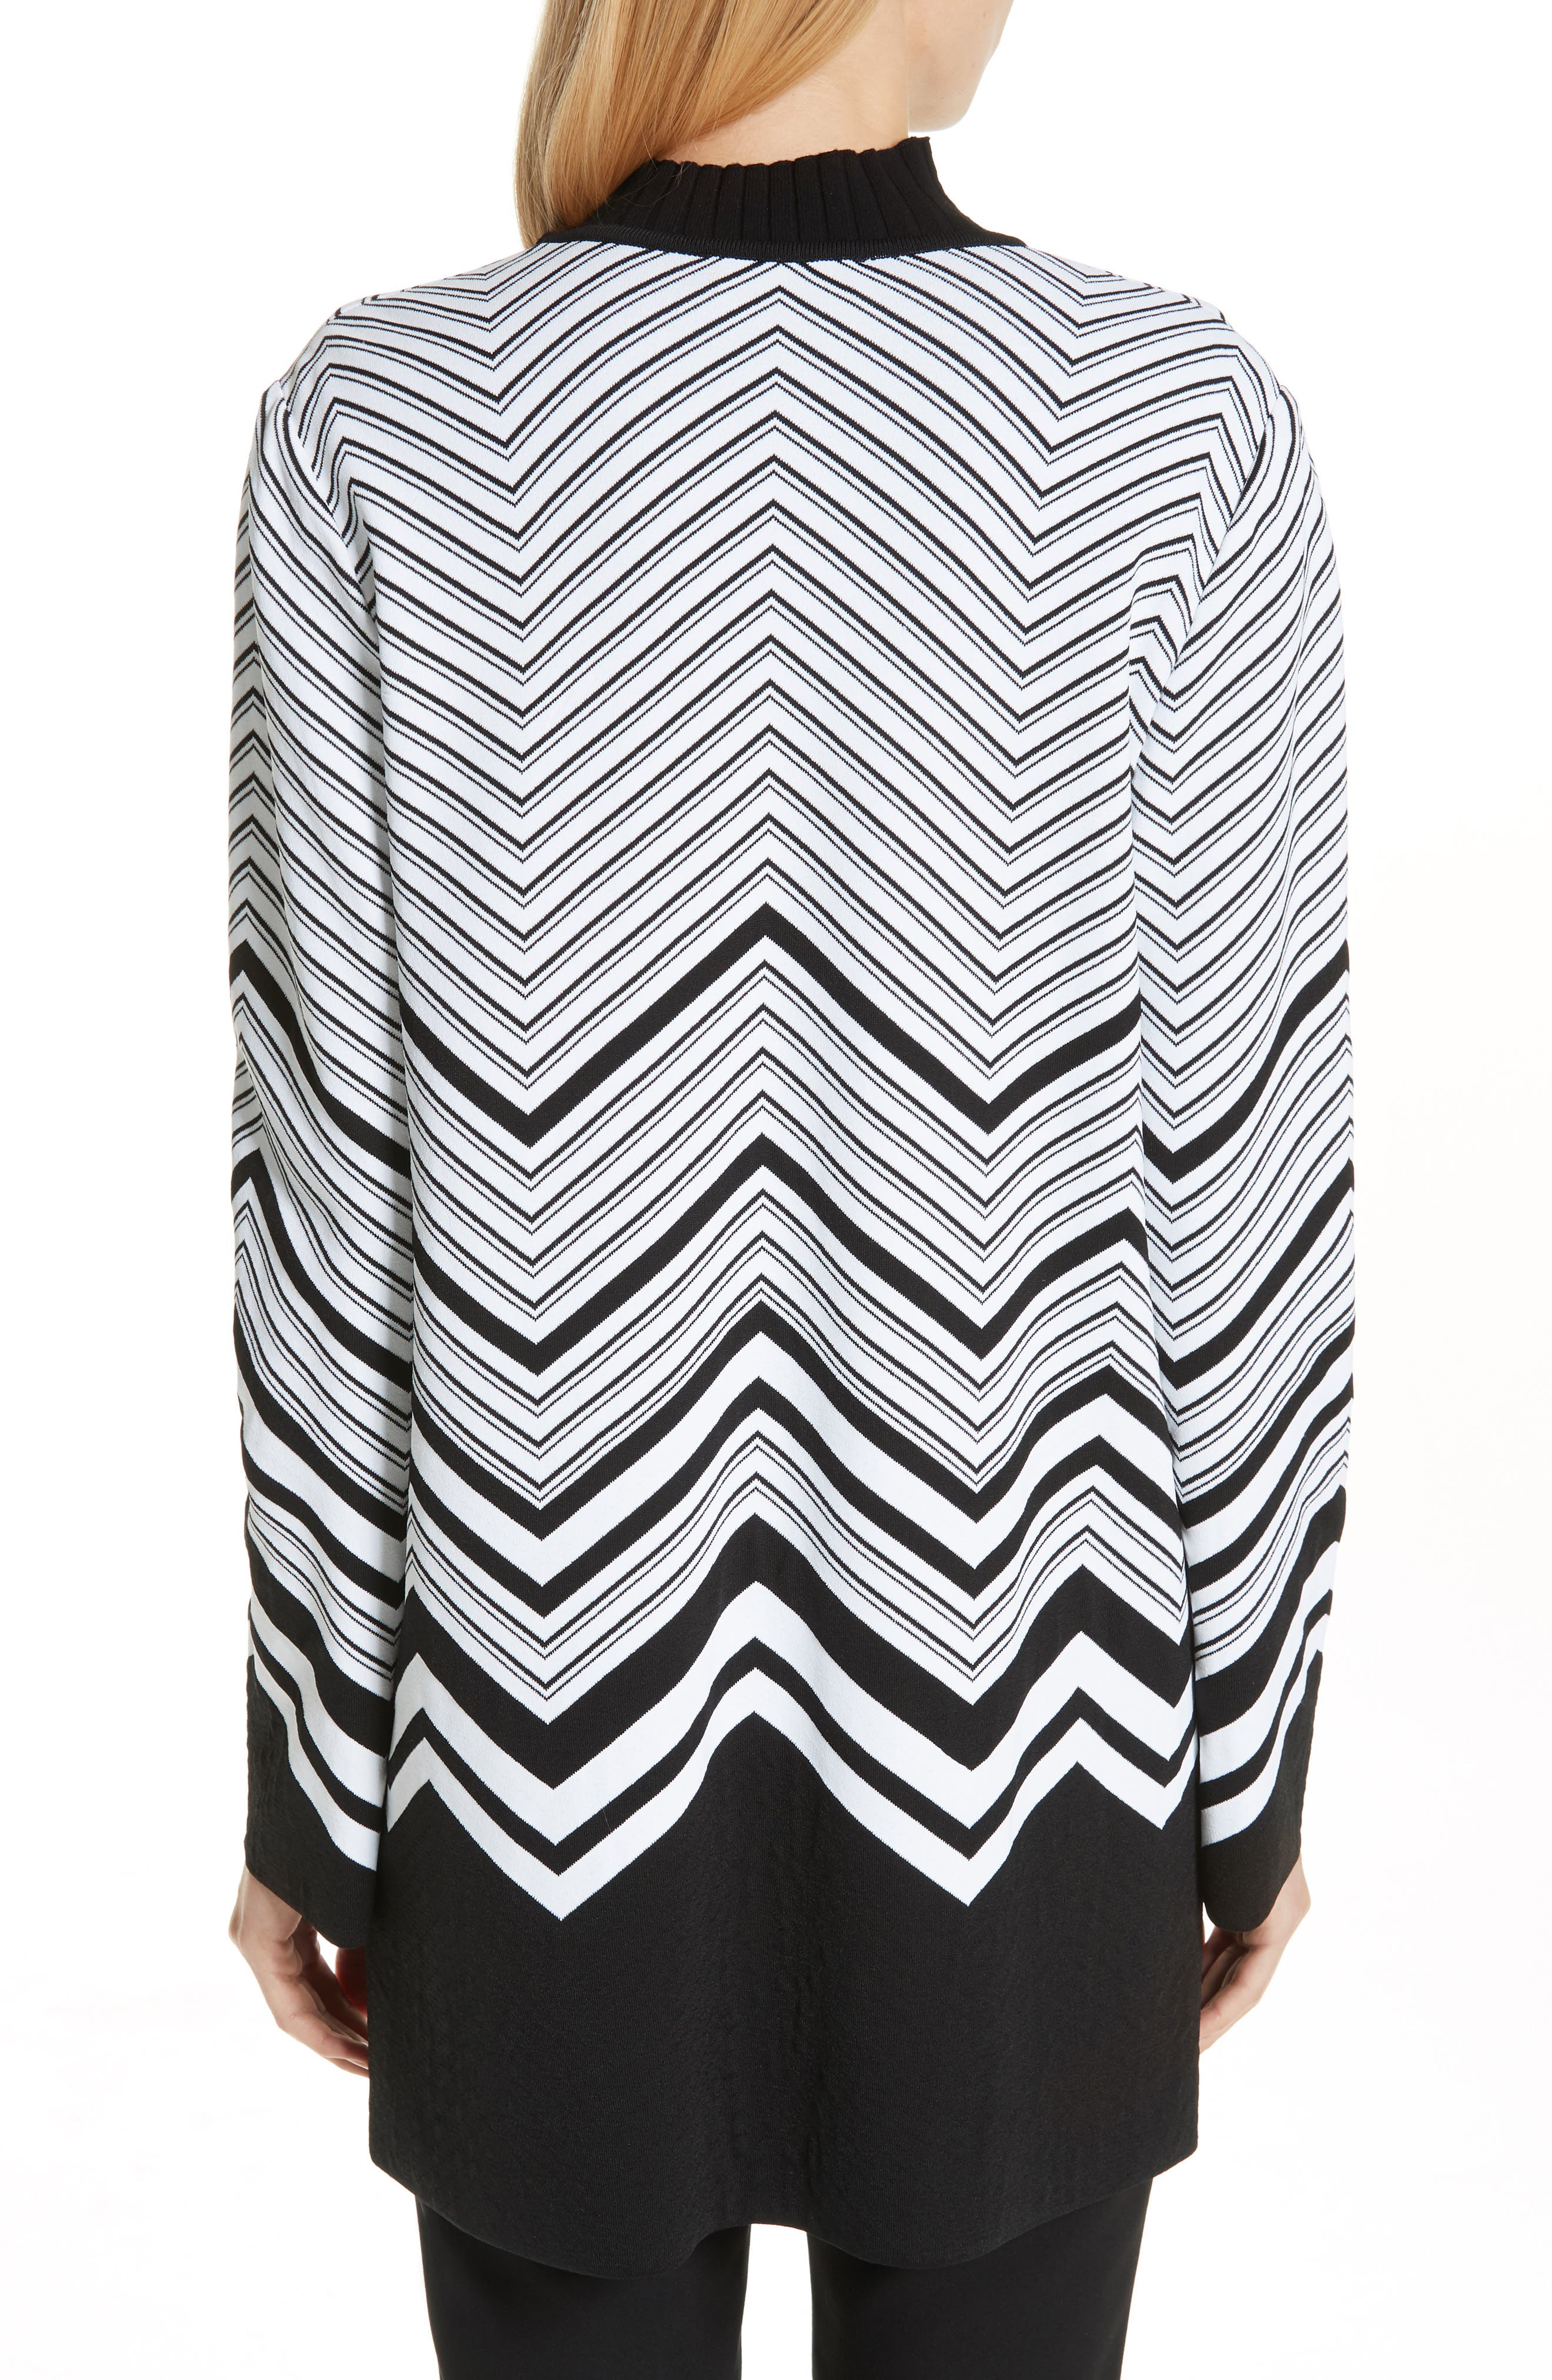 Chevron Jacquard Sweater Jacket,                             Alternate thumbnail 2, color,                             CAVIAR/ WHITE